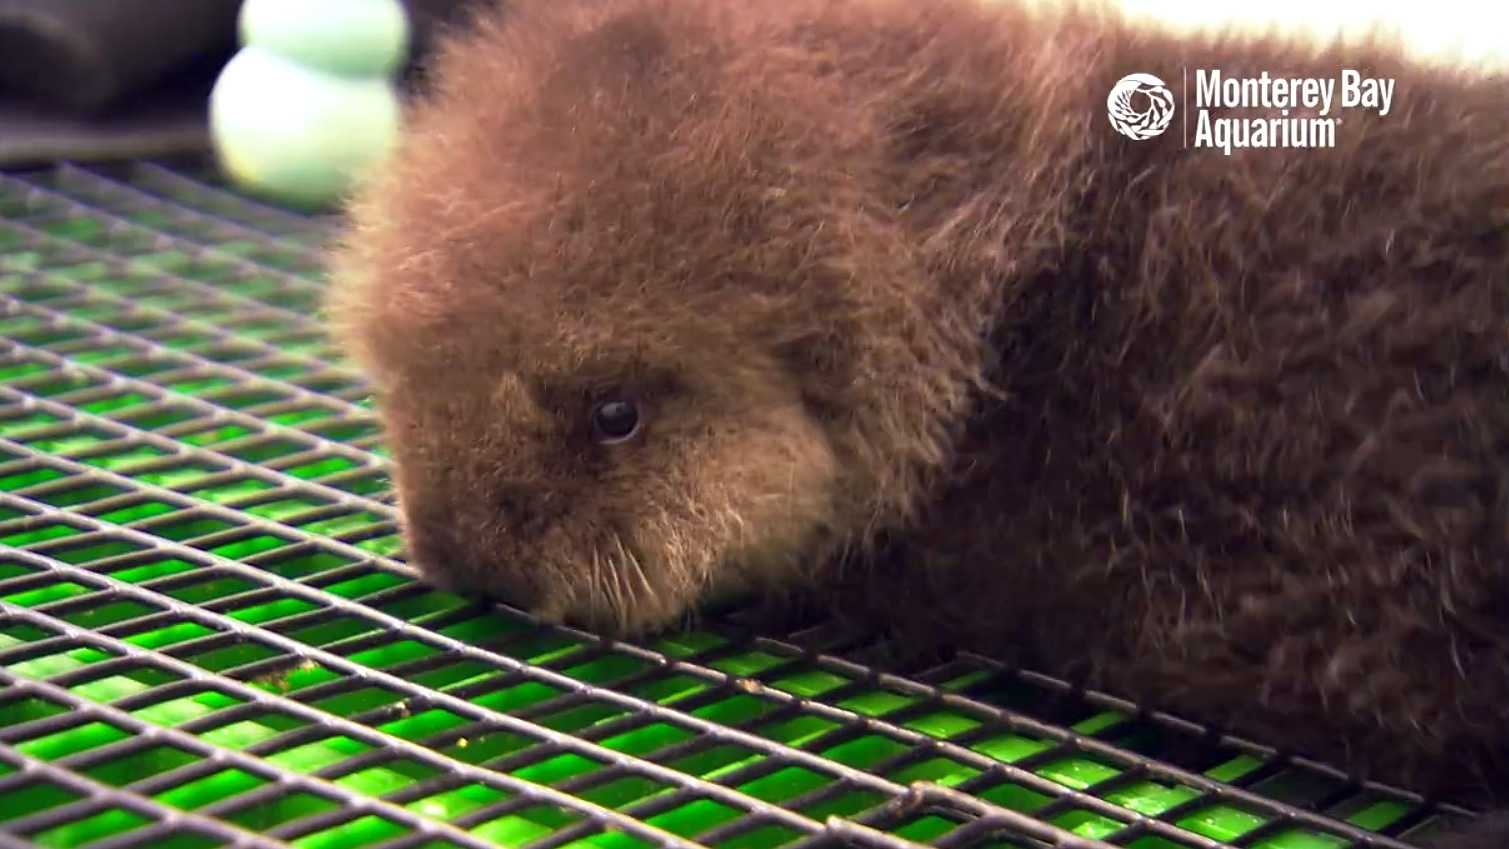 Otter 696 gets fluffed by Monterey Bay Aquarium staff. The orphan pup's stay at aquarium was highlighted for Sea Otter Awareness Week.